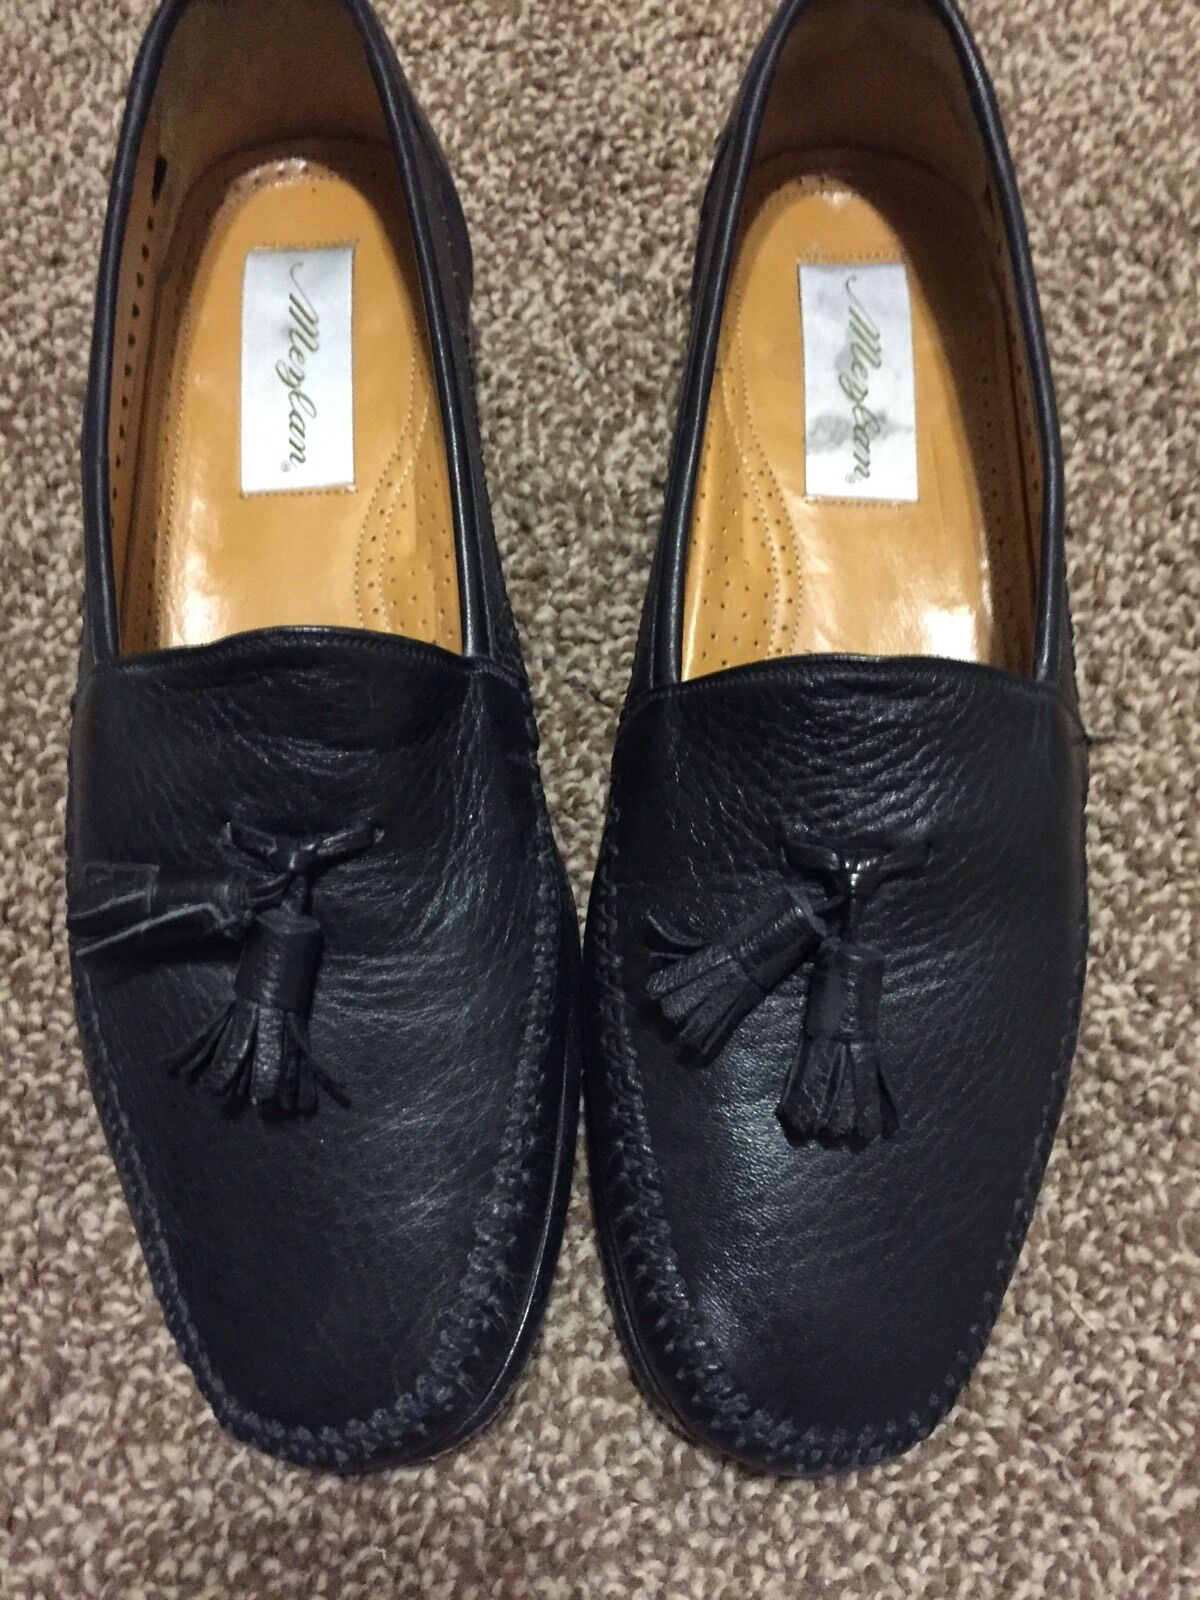 Extremely Rare Redondo Mezlan Leather Loafer uomo's Dress Shoes sz 9 1/2 Scarpe classiche da uomo